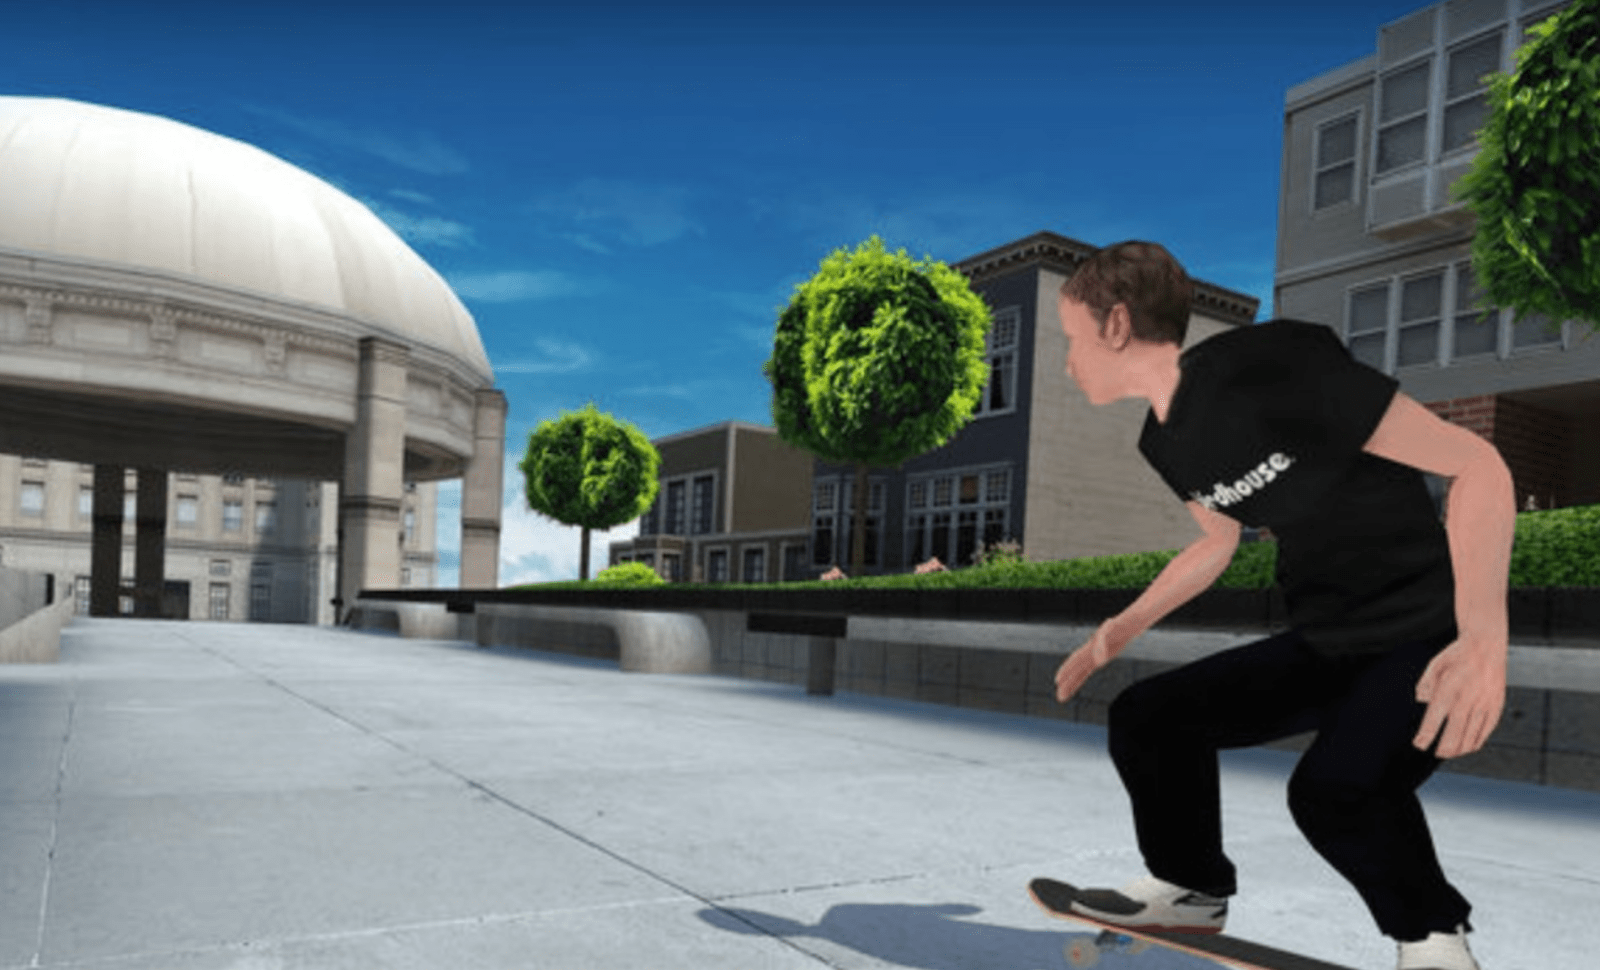 TONY HAWK'S LATEST VIDEO GAME COMES OUT NEXT WEEK skate jam